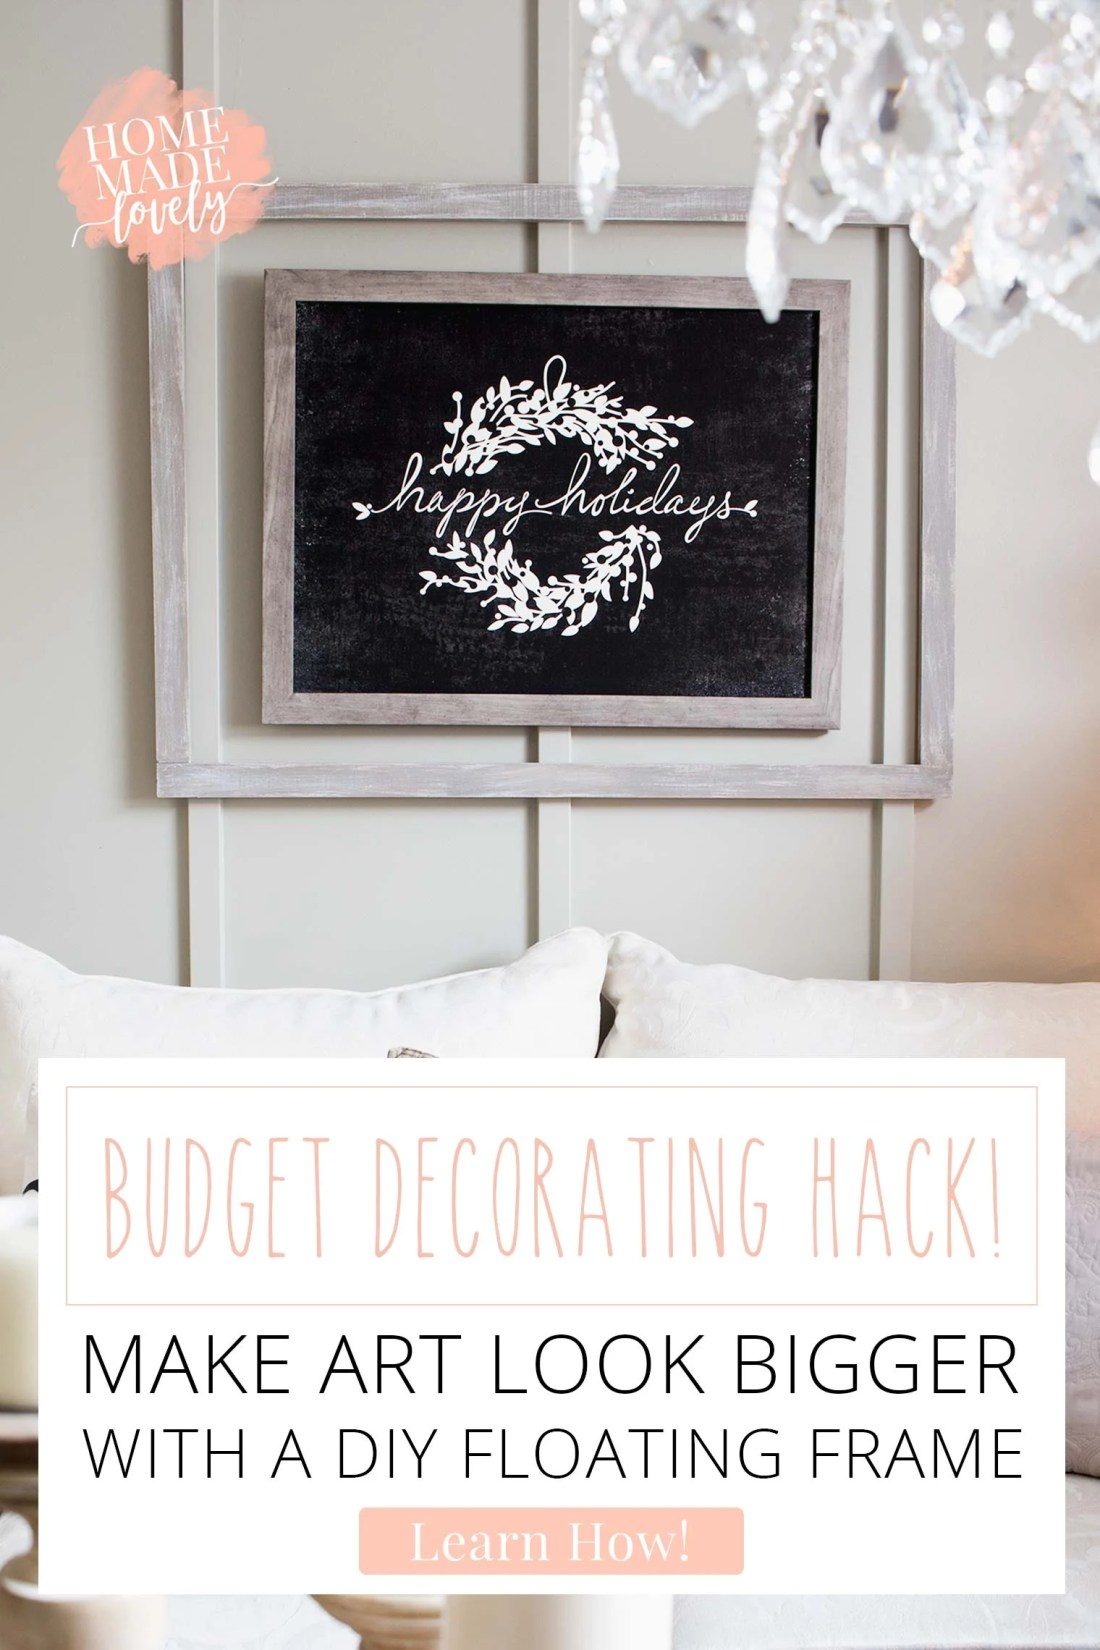 Don't have the budget to buy a huge piece of art for that wall? Then buy a smaller one and make art look bigger with this DIY floating frame!